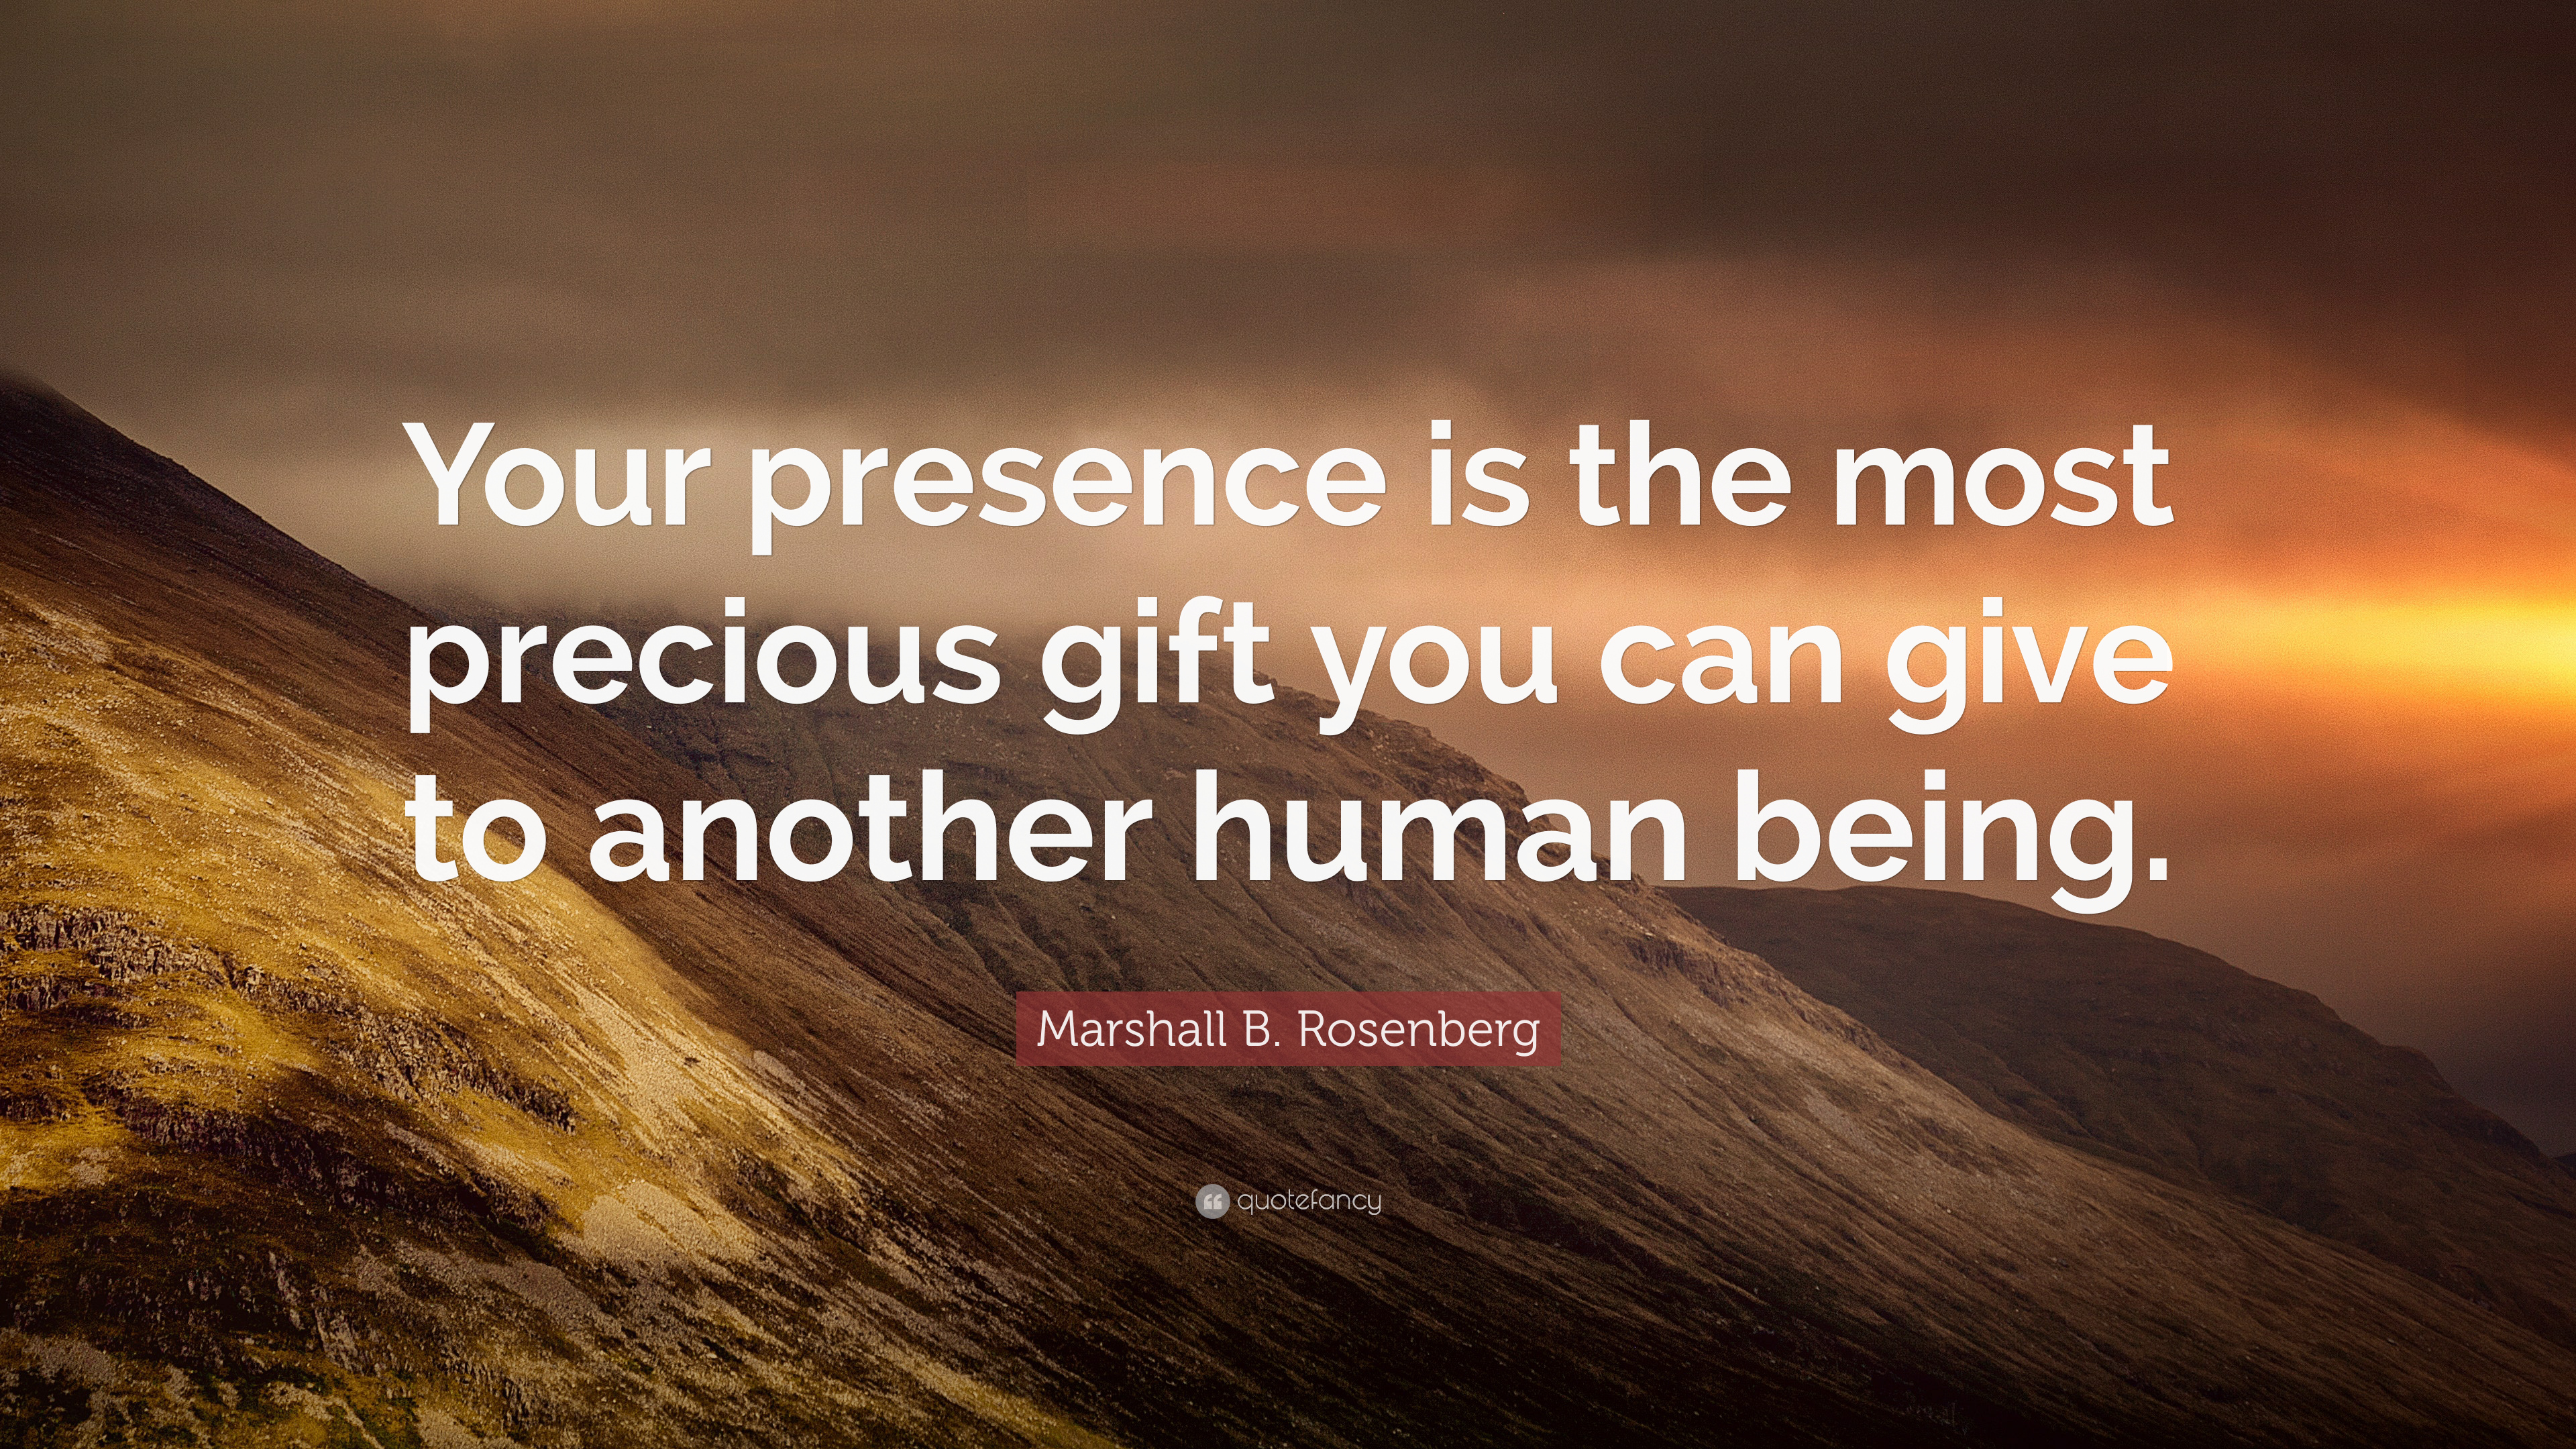 """Marshall B. Rosenberg Quote: """"Your presence is the most precious gift you can give to another human being."""" (7 wallpapers) - Quotefancy"""